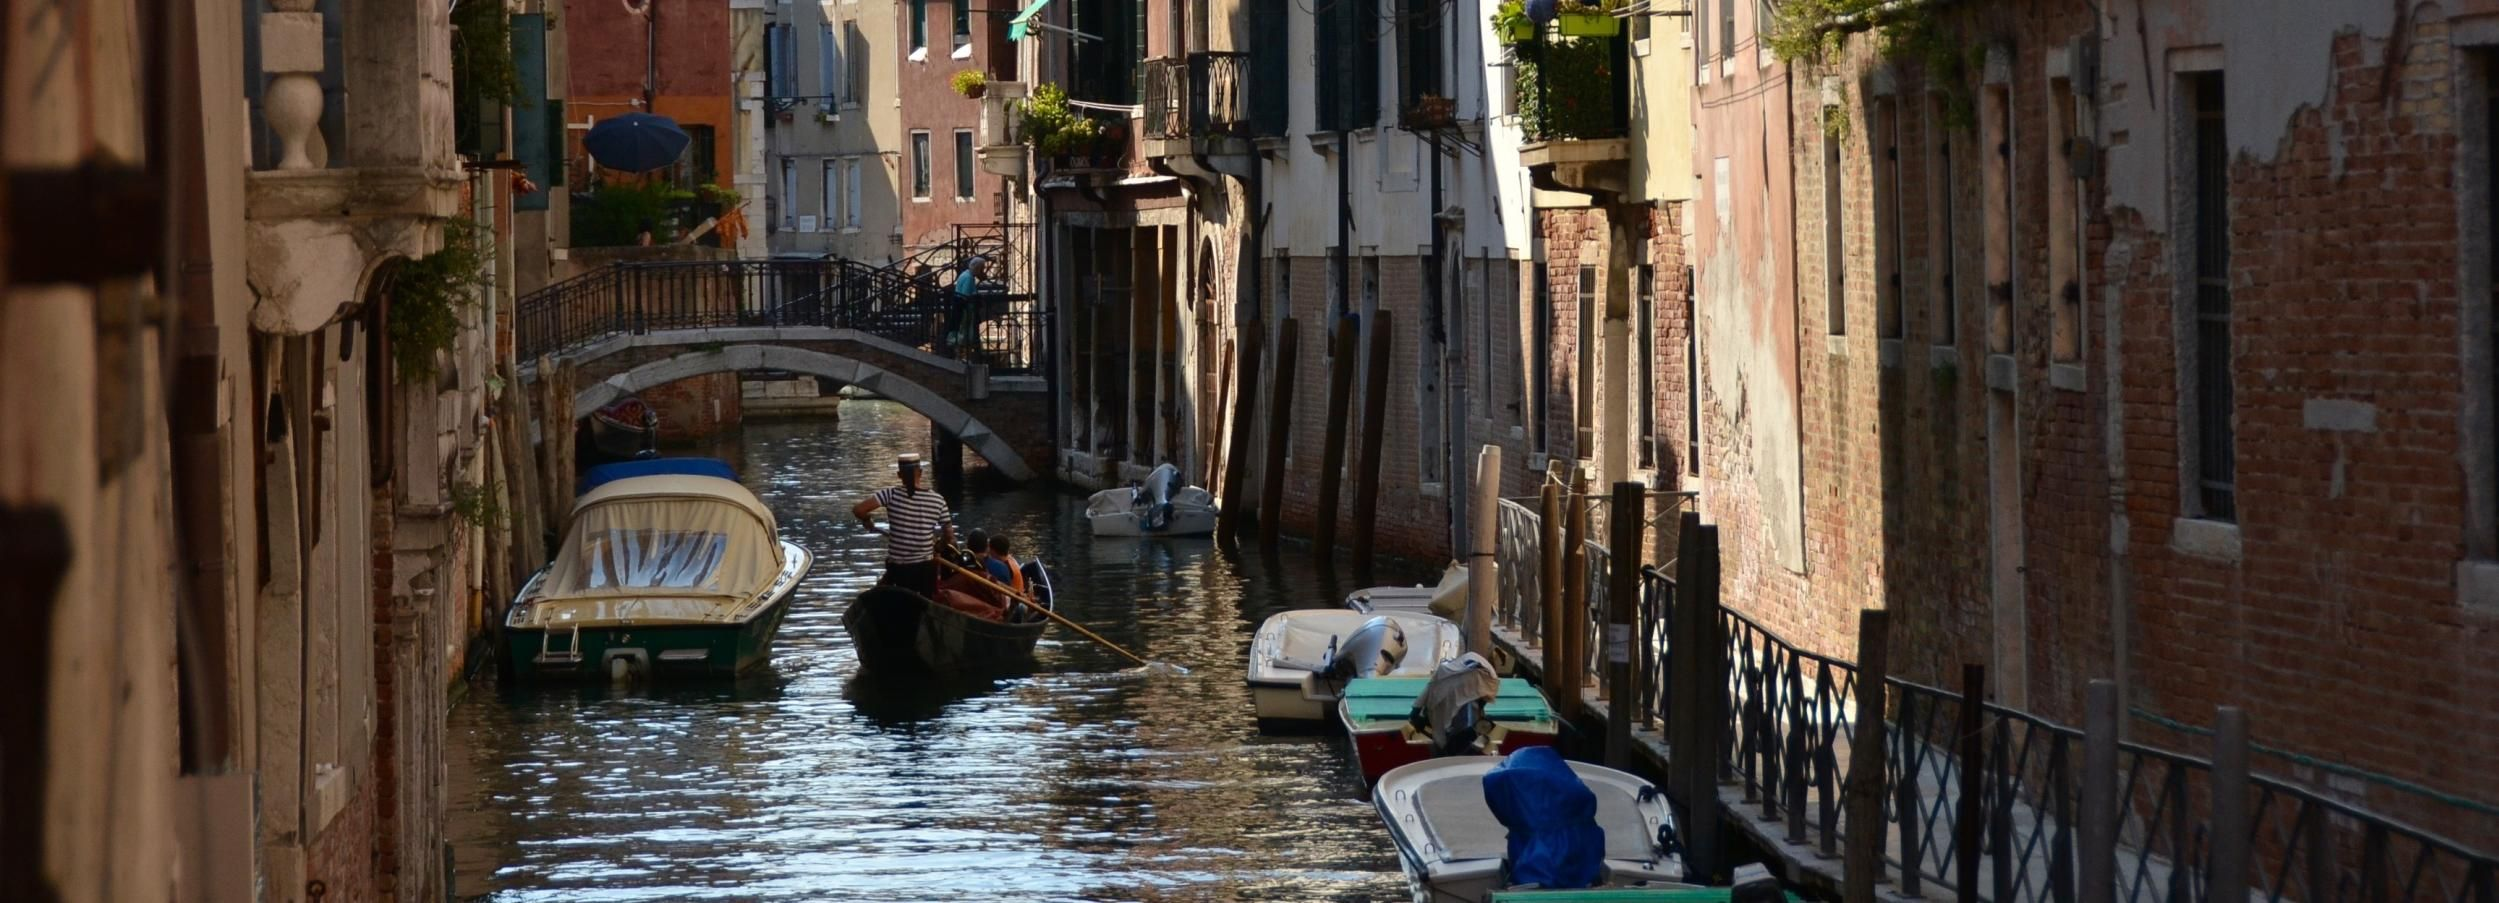 The City Discovery Game - The Alternative Tour of Venice